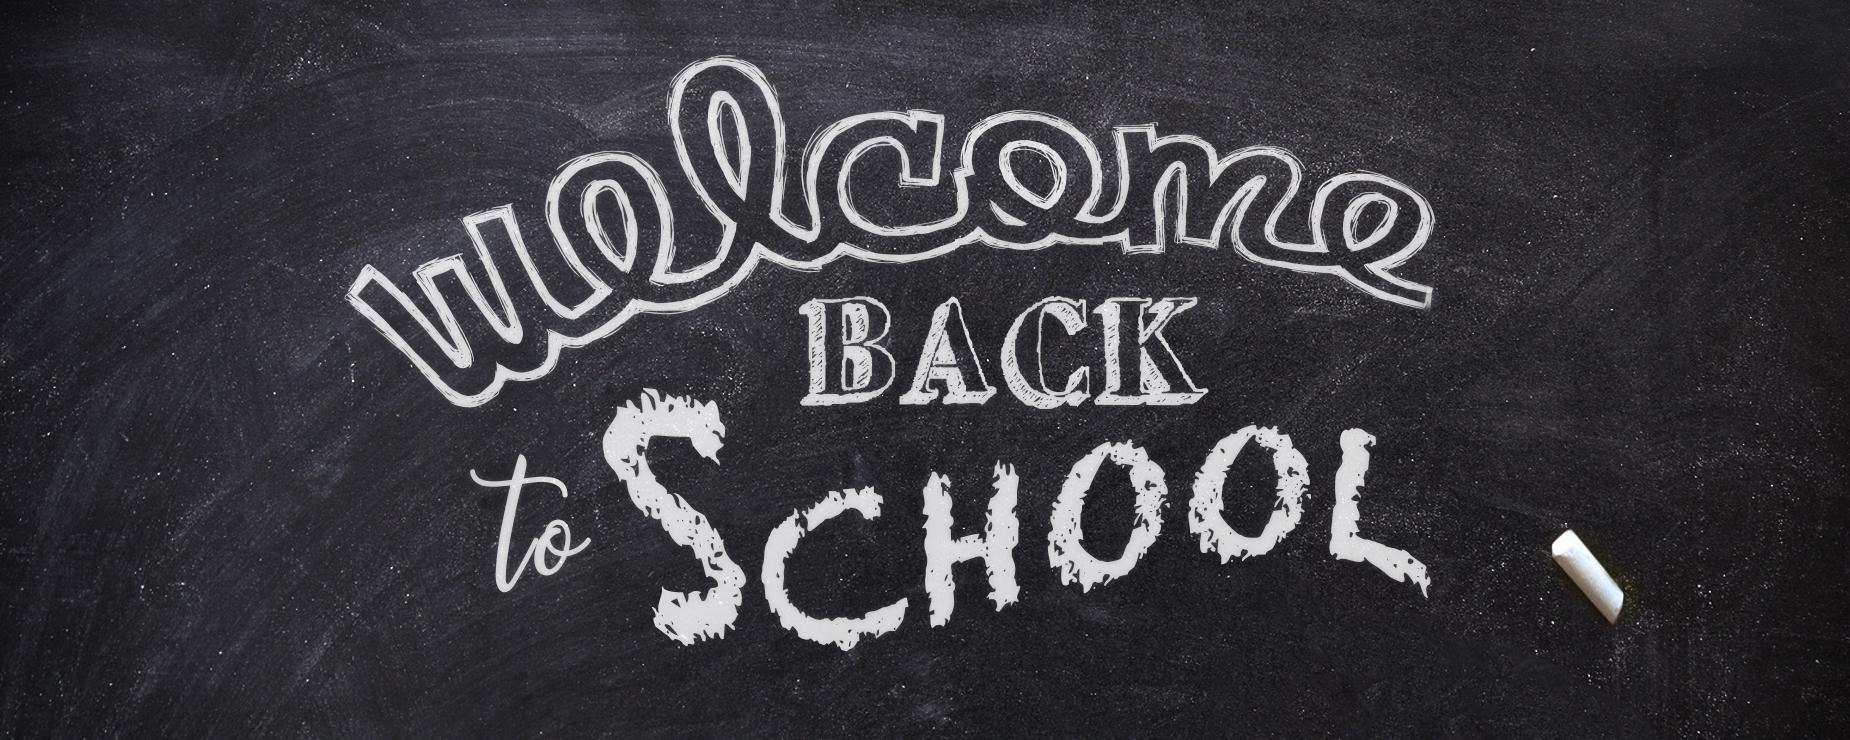 Chalkboard graphic with Welcome Back to School written across it. l